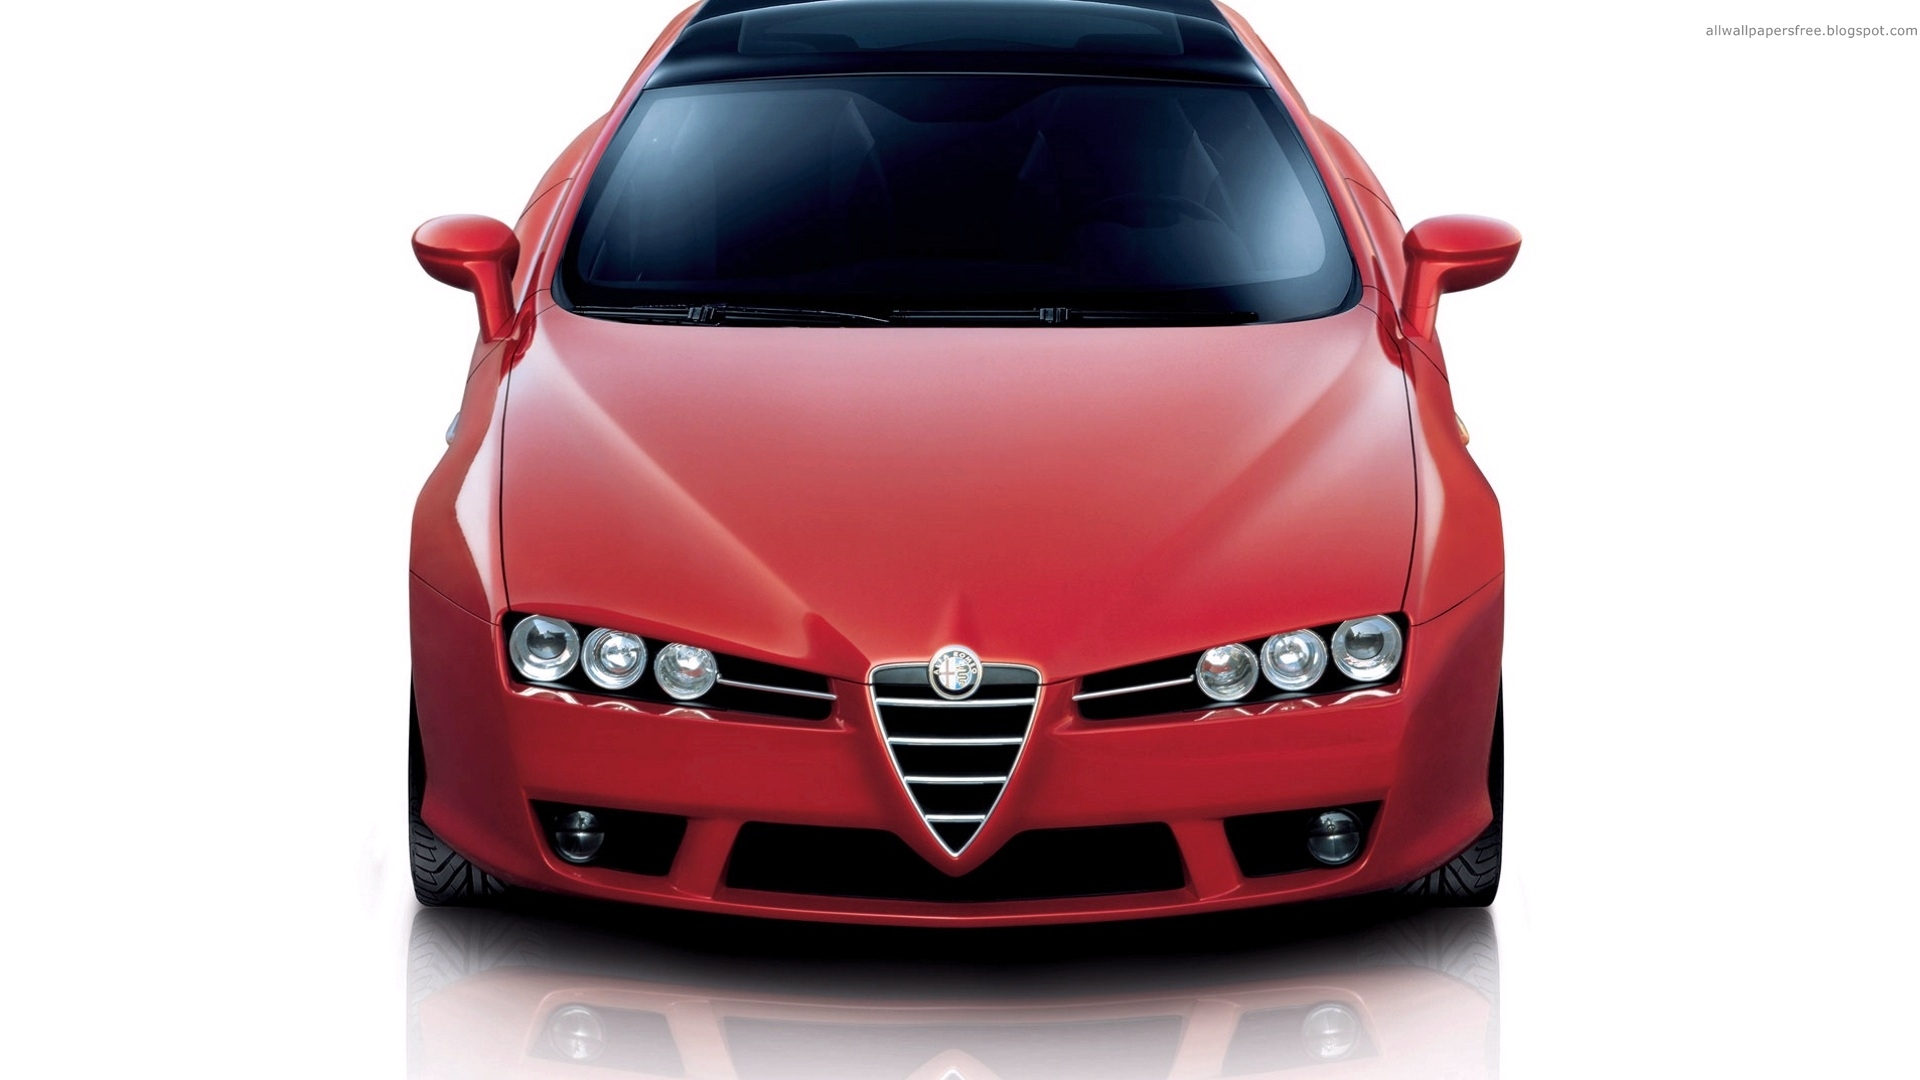 cars Alfa Romeo Car HD Wallpaper